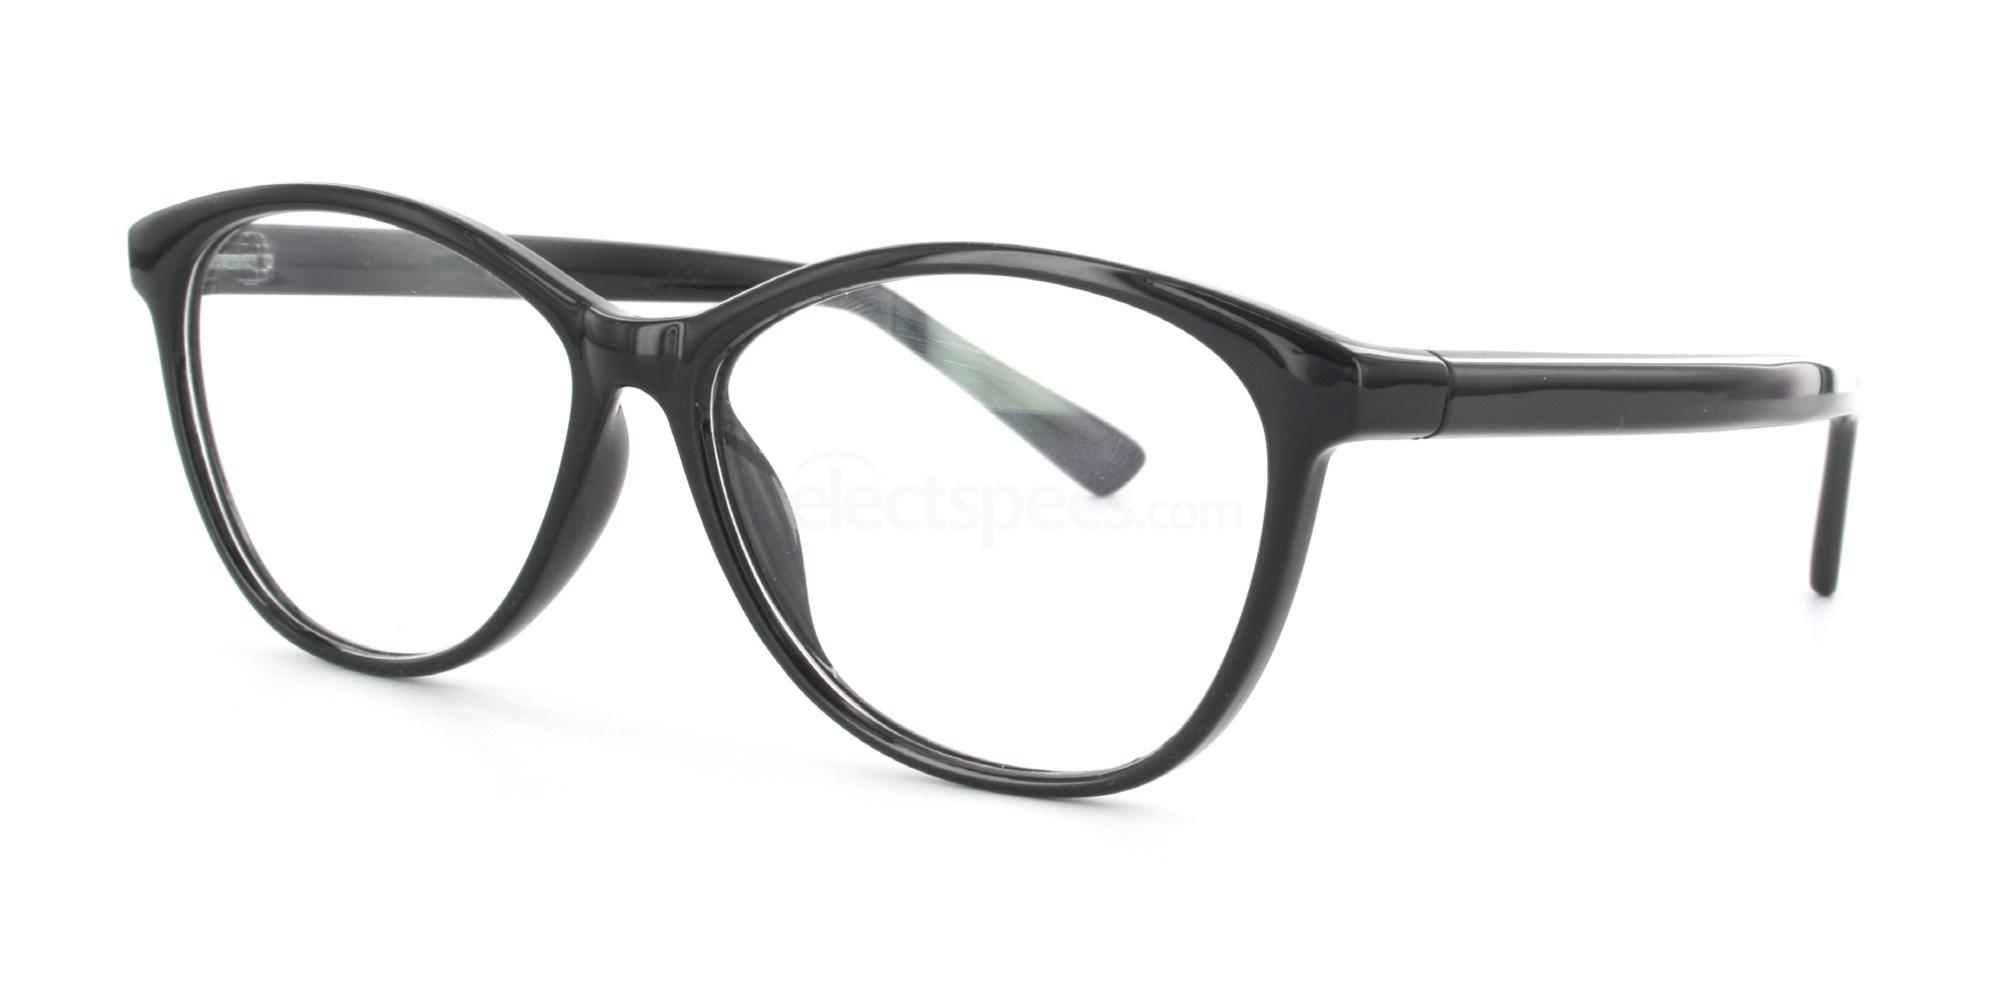 1dc19cd561 Savannah Budget Glasses at SelectSpecs  Tried Tested by Our ...